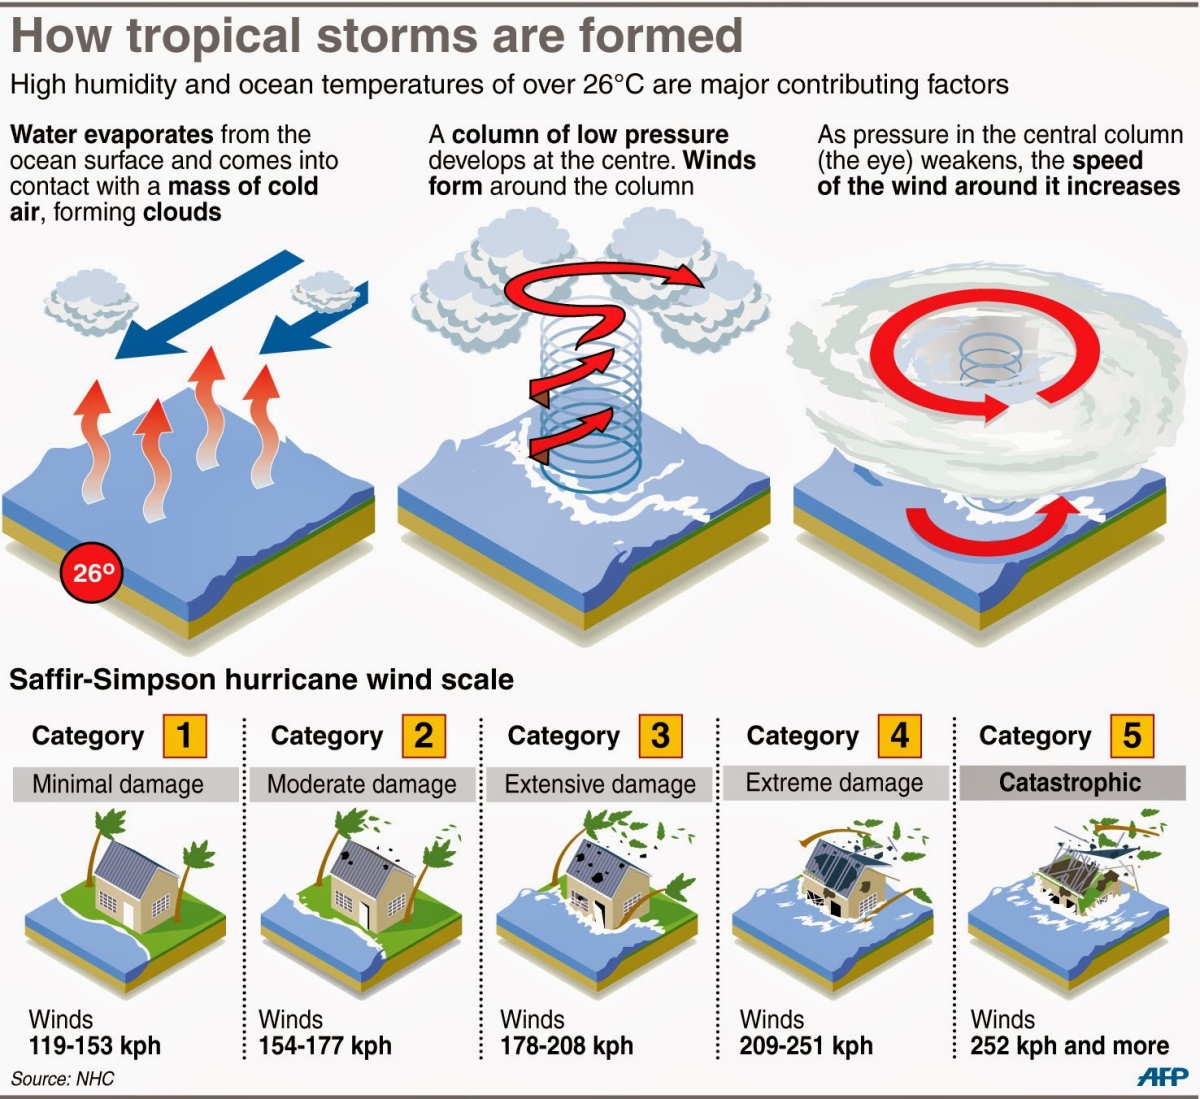 How Does A Tropical Storm Form?